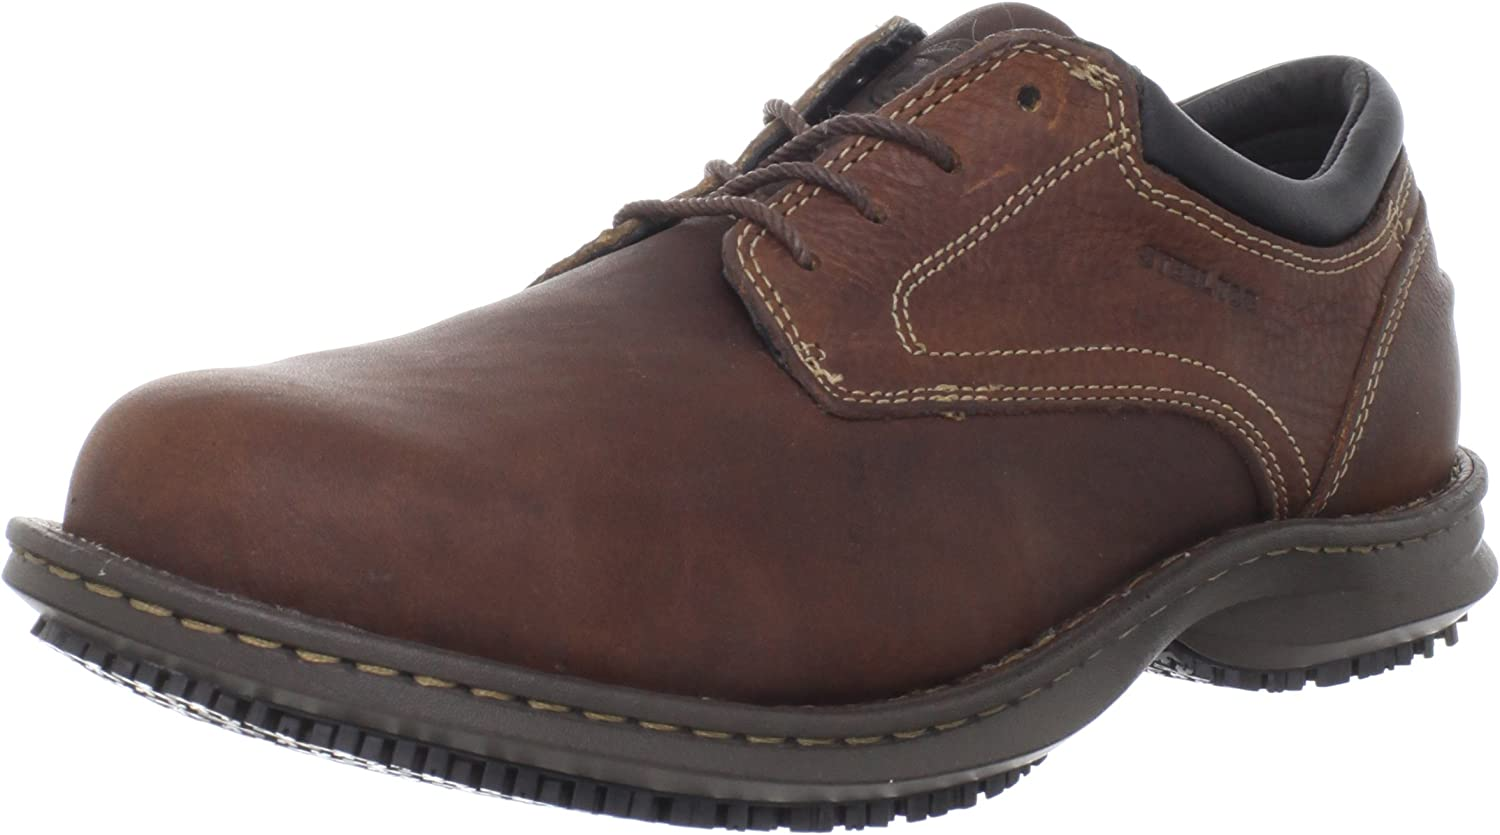 Timberland PRO Men's Gladstone Electro Static Dissipative Oxford